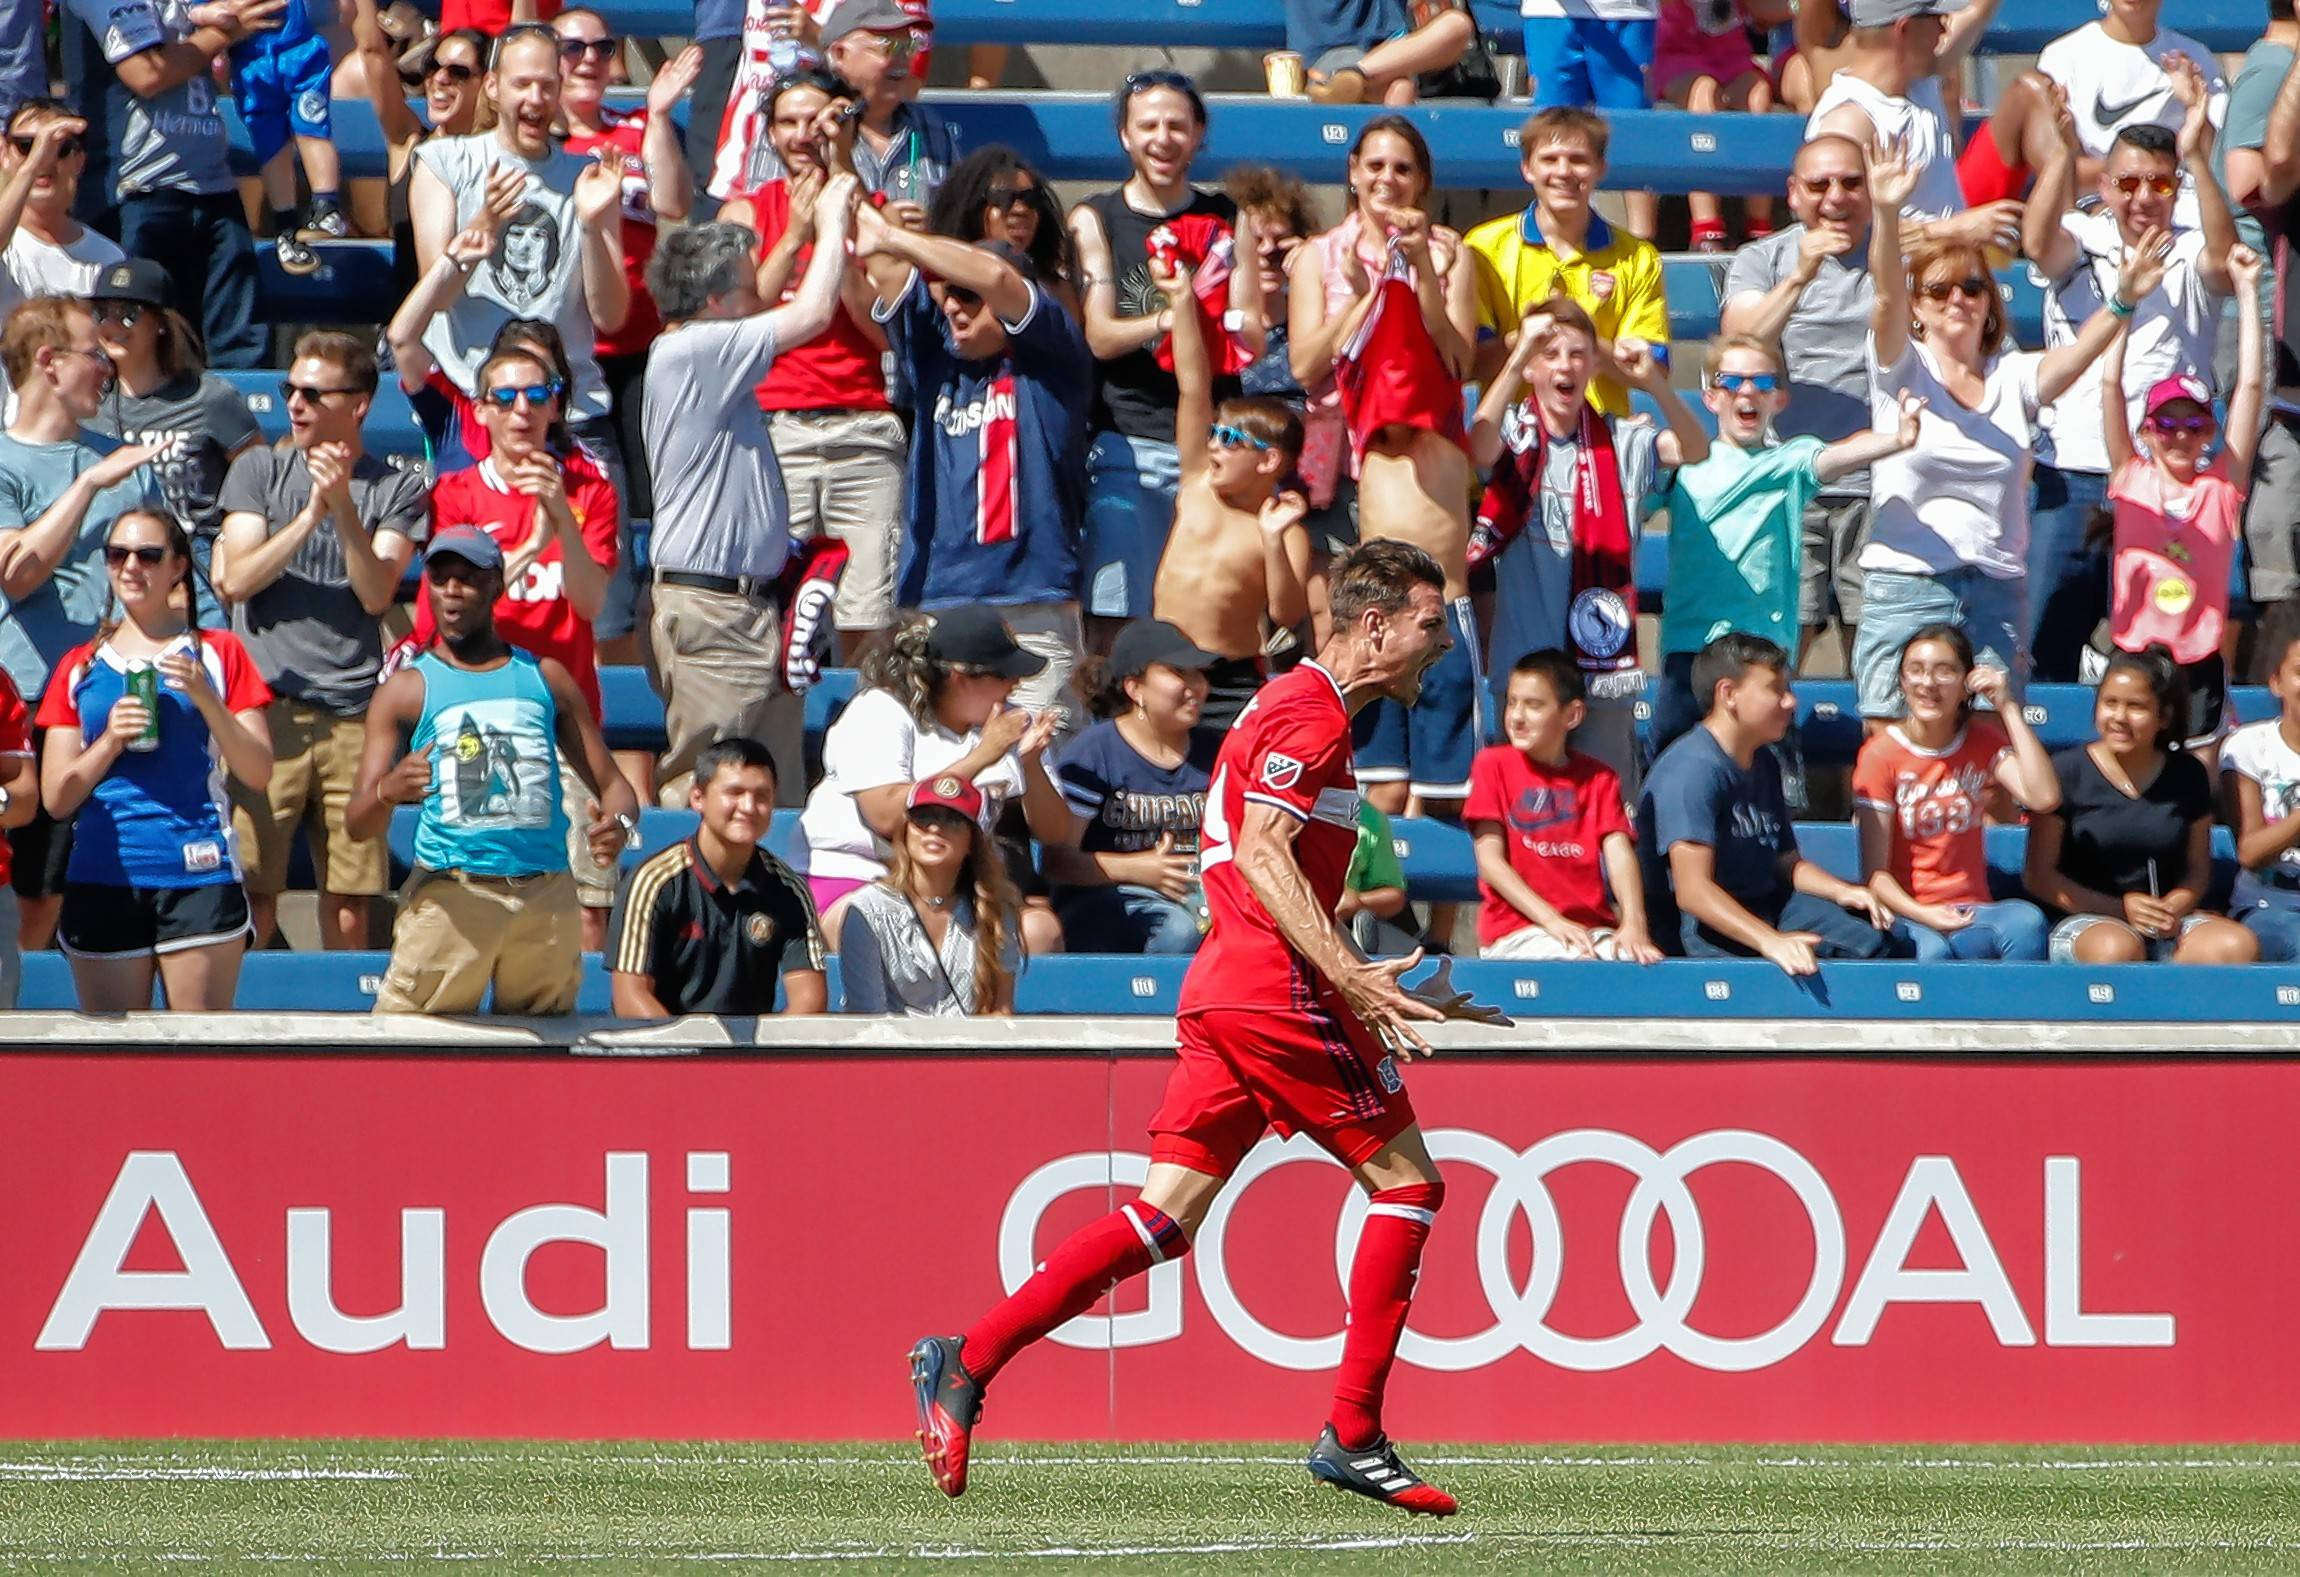 Chicago Fire fans do more than celebrate a goal for their team, in this case one by forward Luis Solignac. Many of them will join together in October for a 20th anniversary celebration to honor their club.